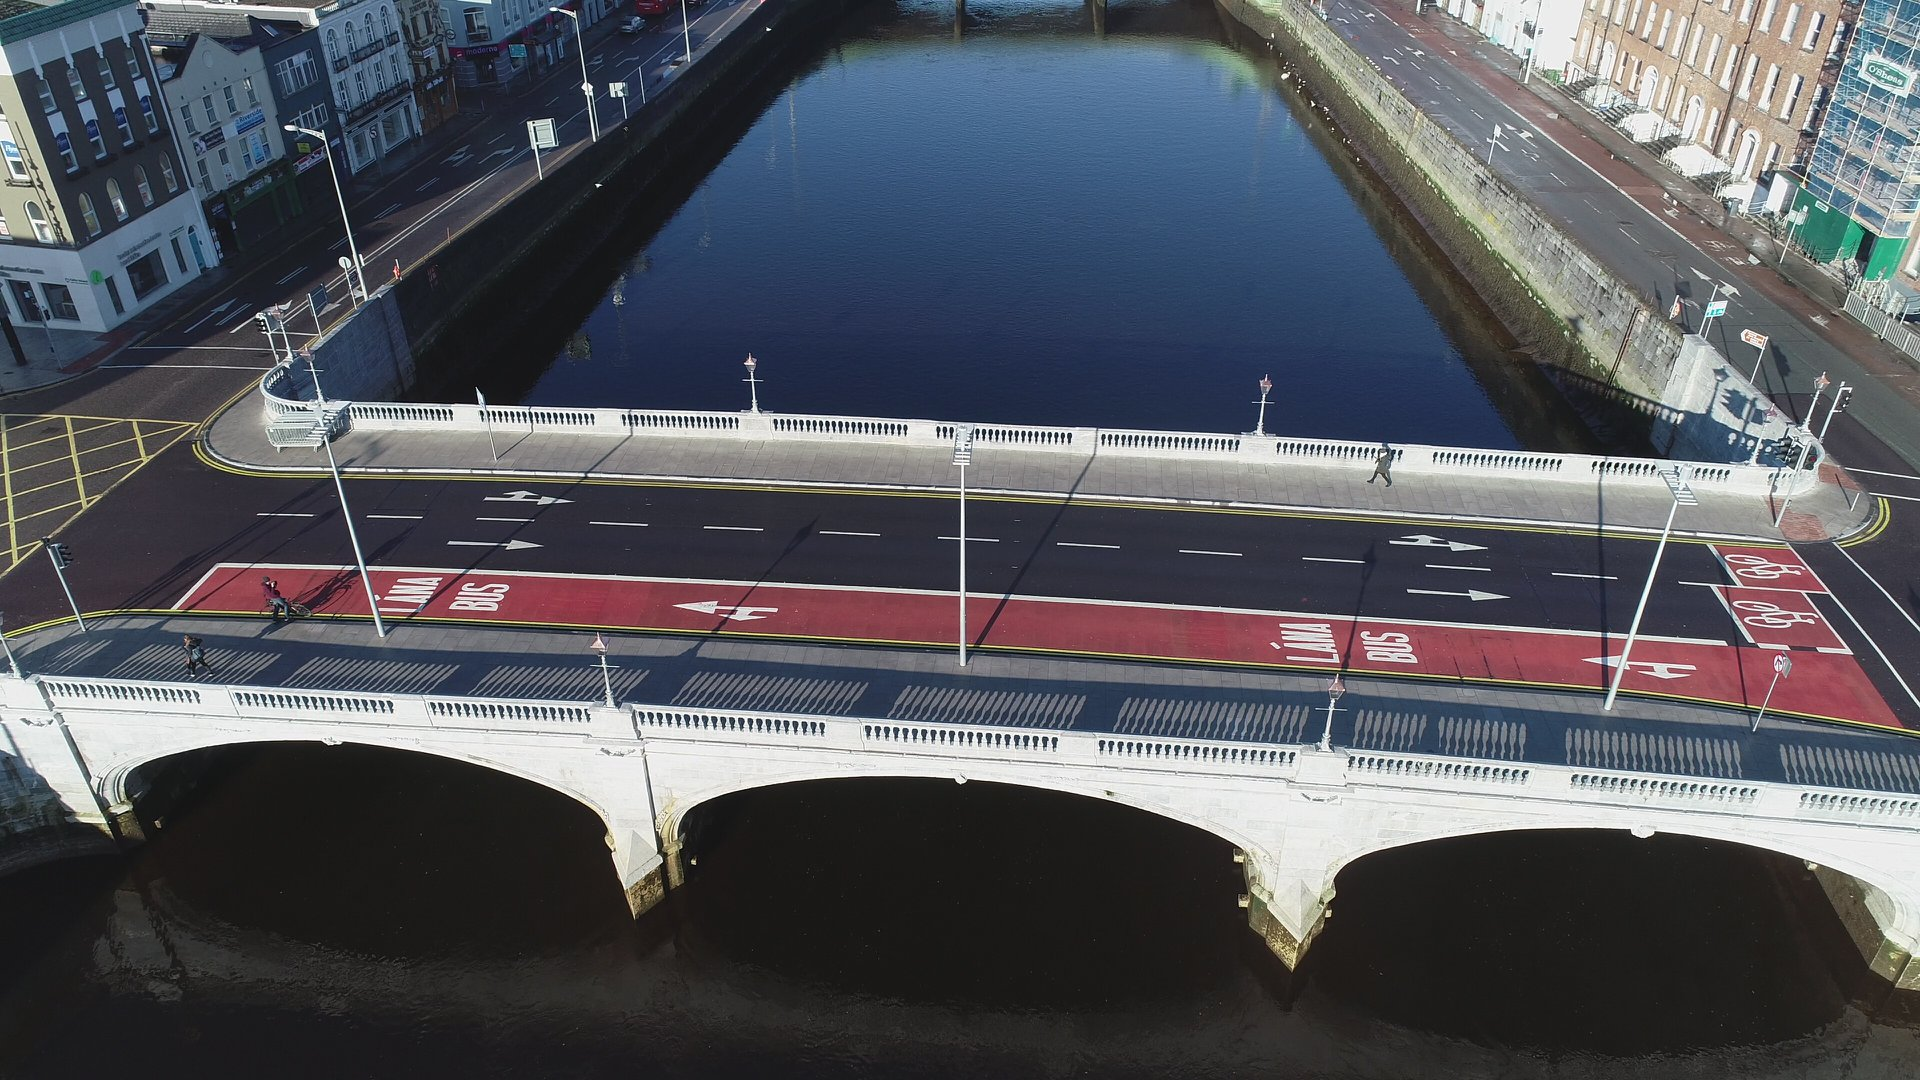 St. Patrick's Bridge Refurbishment – Architectural Lighting Designers